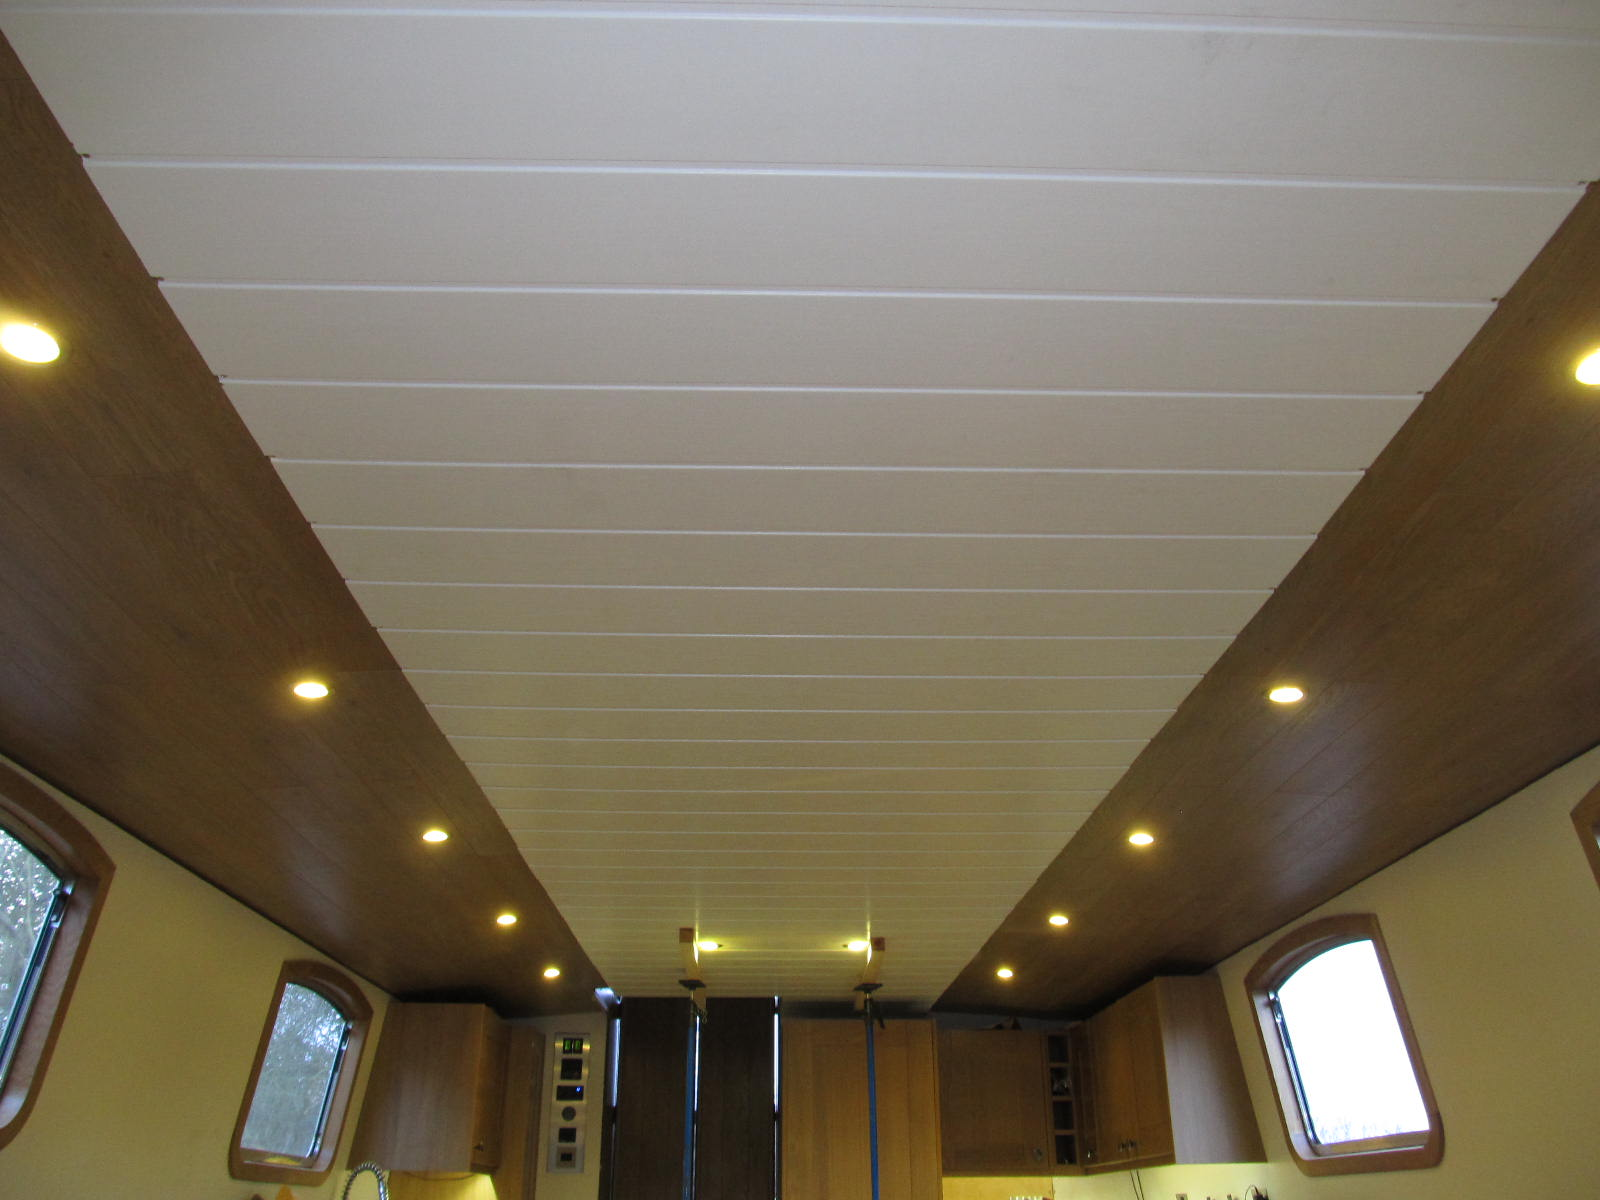 widebeam boat build blog: lounge ceiling